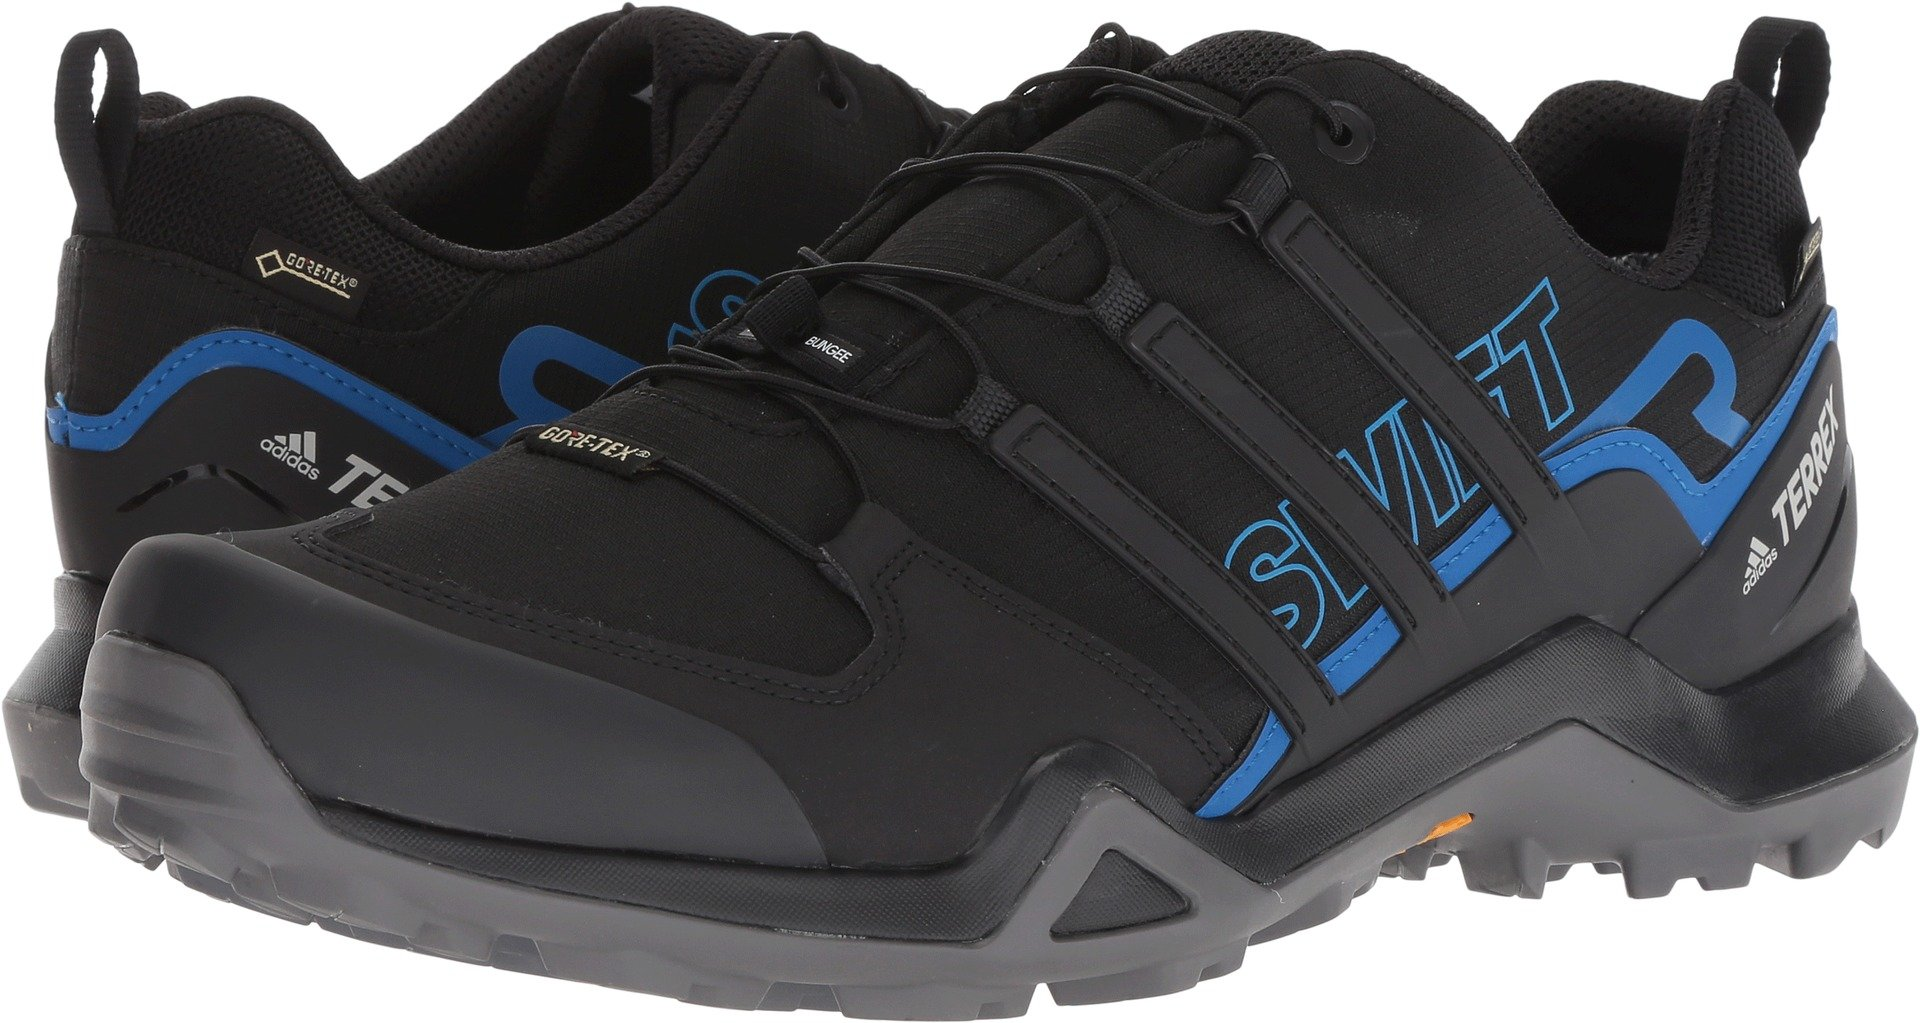 adidas outdoor Men's Terrex Swift R2 GTX¿ Black/Black/Bright Blue 6.5 D US by adidas outdoor (Image #1)